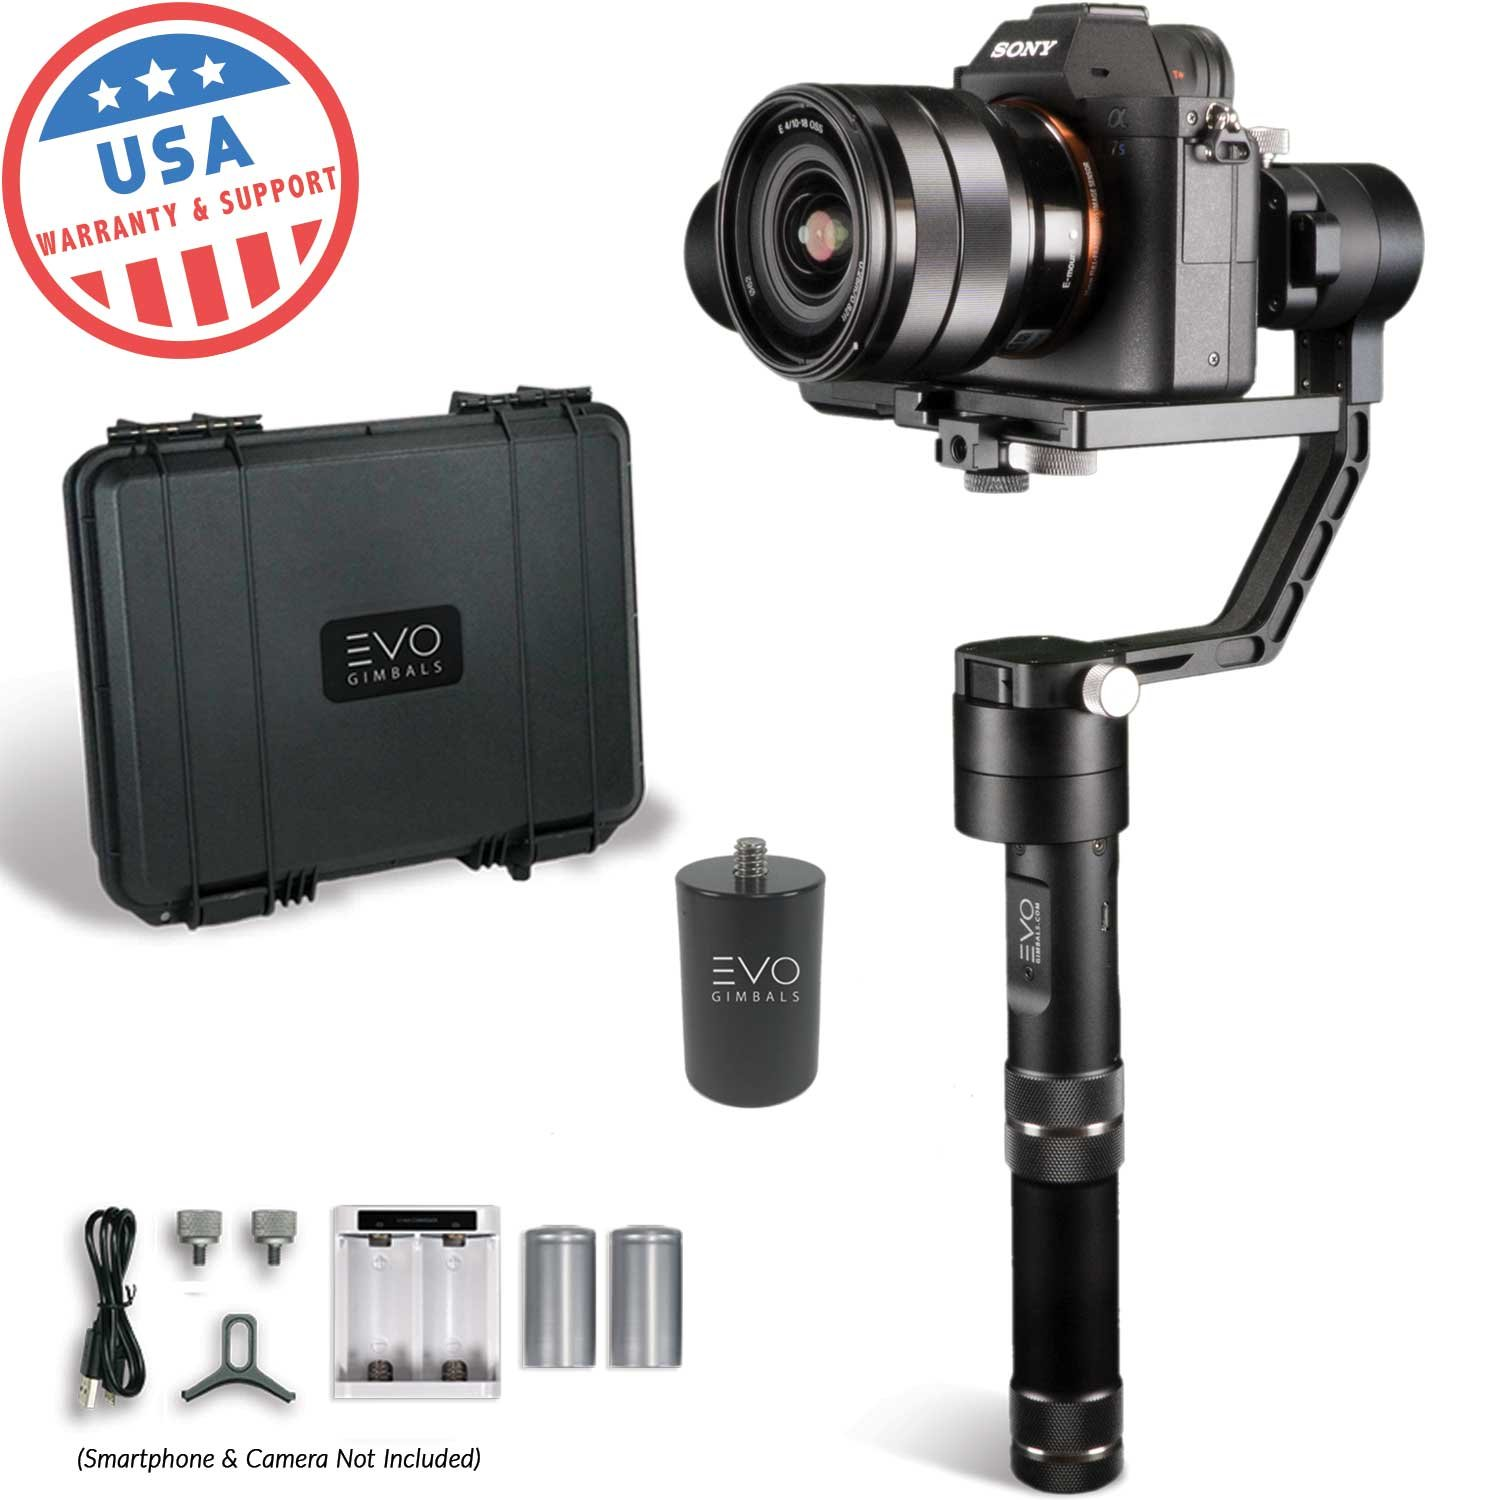 EVO Rage Gen2 Handheld 3 Axis Gimbal for DSLR & Mirrorless Cameras - Works with Sony A7SII, Panasonic GH4 GH5 - 1 Year USA Warranty   Bundle Includes: EVO Rage Gen2 + (1) PA-100 Painter's Pole Adapter